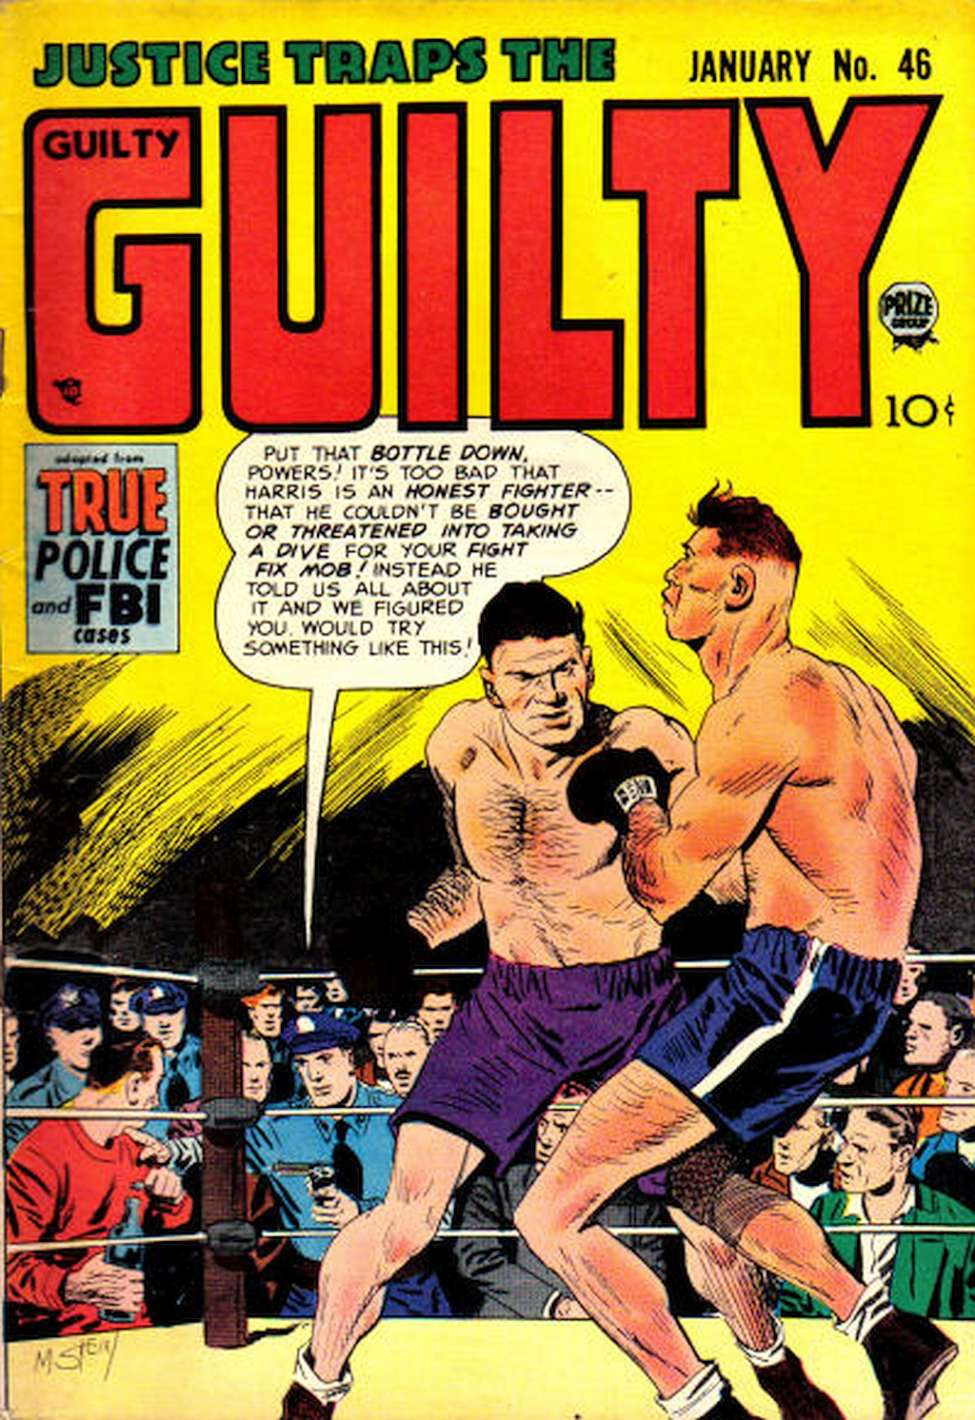 Comic Book Cover For Justice Traps the Guilty v6 4 (46)